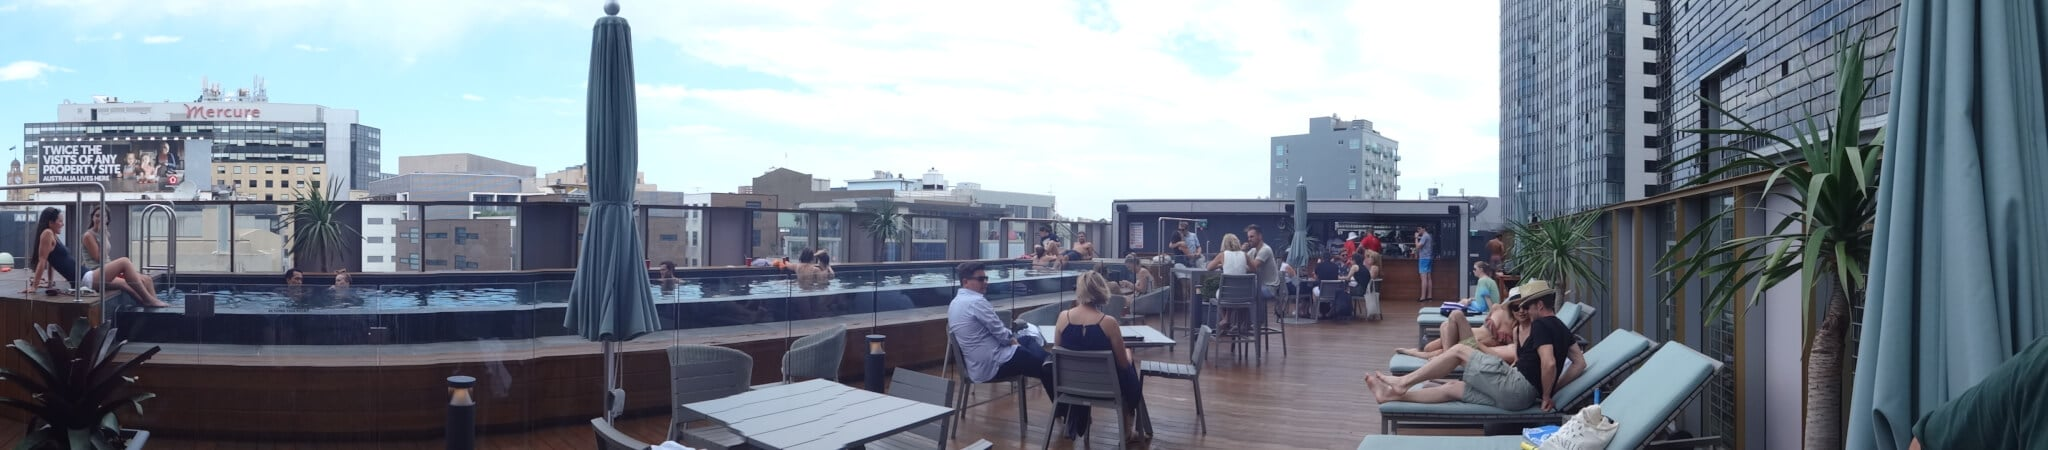 Old Clare Hotel Rooftop Pool Bar